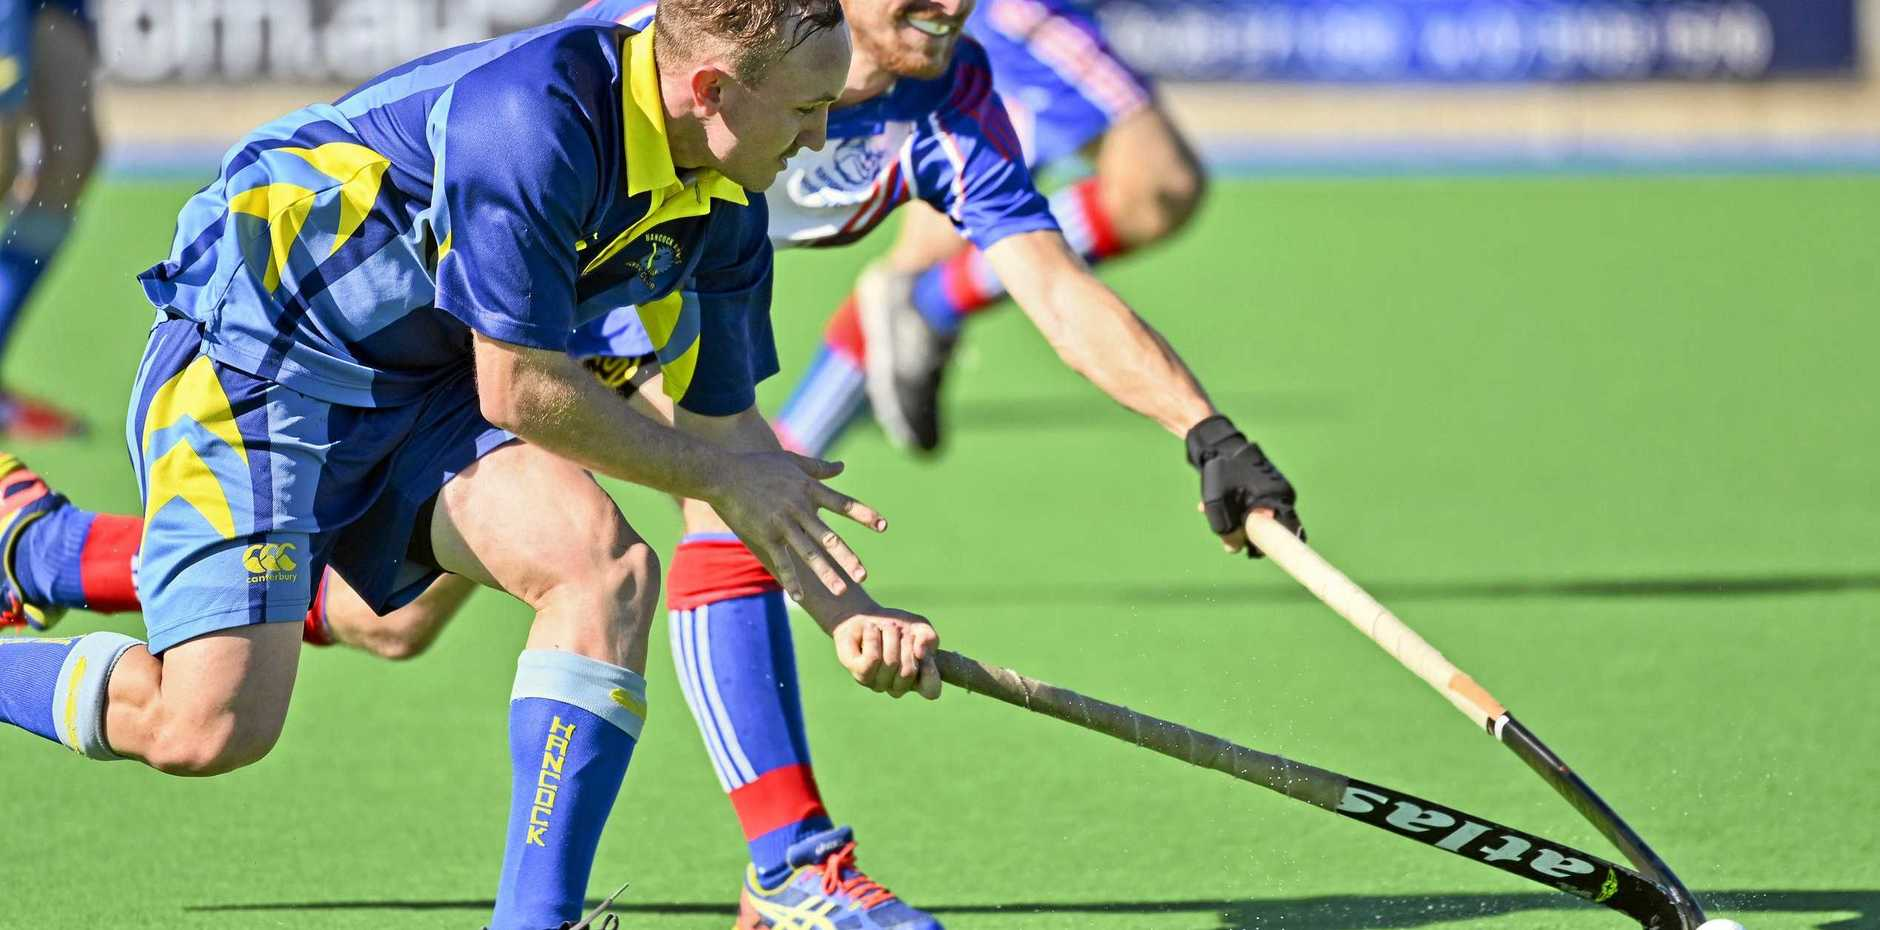 FINALS' WARM-UP: Hancocks A-Grader Ryan Smith takes on his Toowoomba Rangeville opponent during a recent match. The Combined Competition finals are on at the Ipswich Hockey Complex on Sunday.